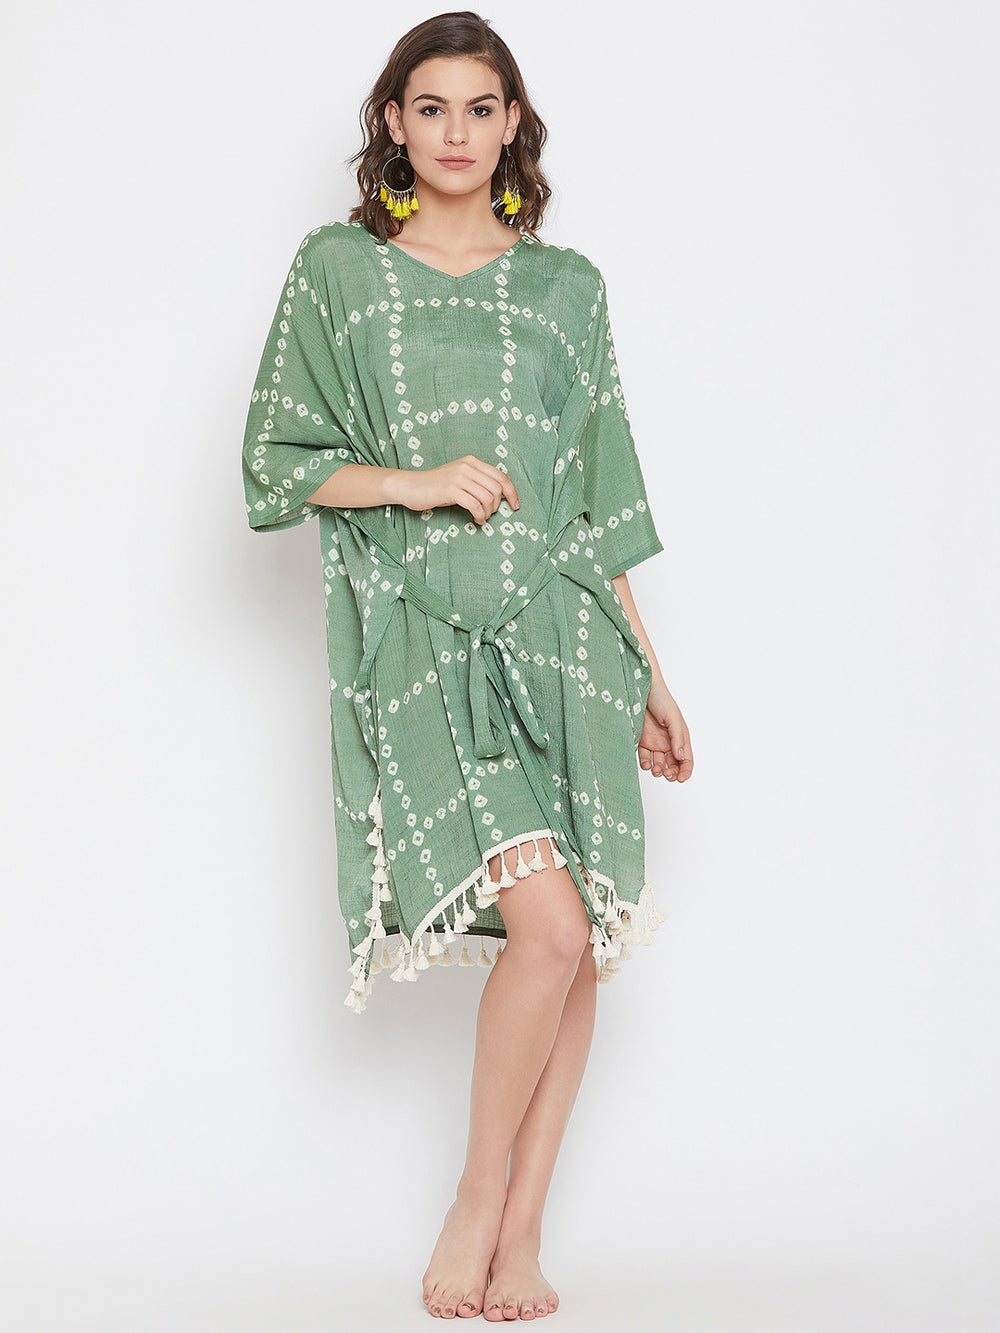 Green Bay Tie-Dye Cover-Up with Fringe Lace